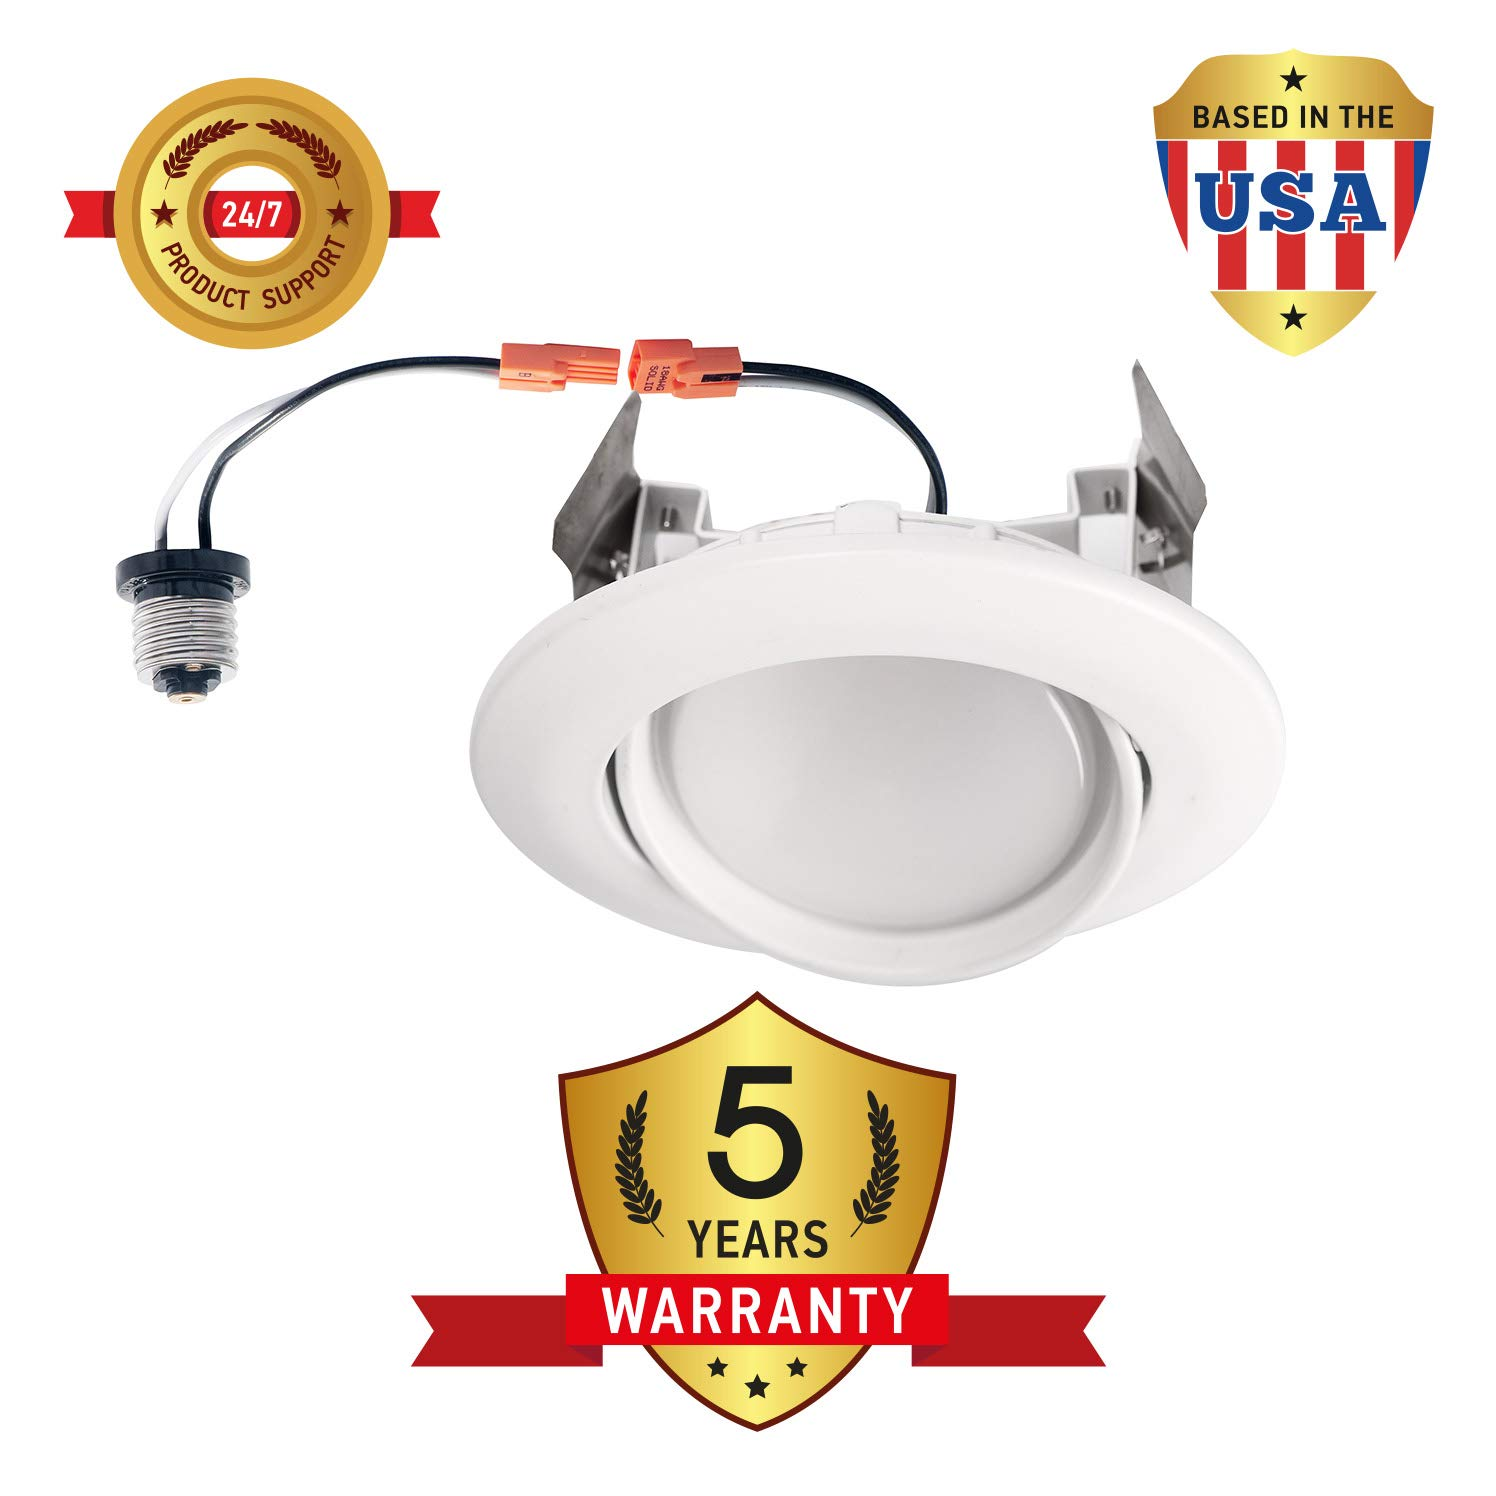 OSTWIN (12 Pack) 4 inch Dimmable LED Downlight Recessed Ceiling Light Fixture, Adjustable Gimbal Trim Kit Can Light, 10 W (75 Watt Replacement), 900 Lm, 5000K Daylight, ETL & Energy Star by OSTWIN (Image #8)